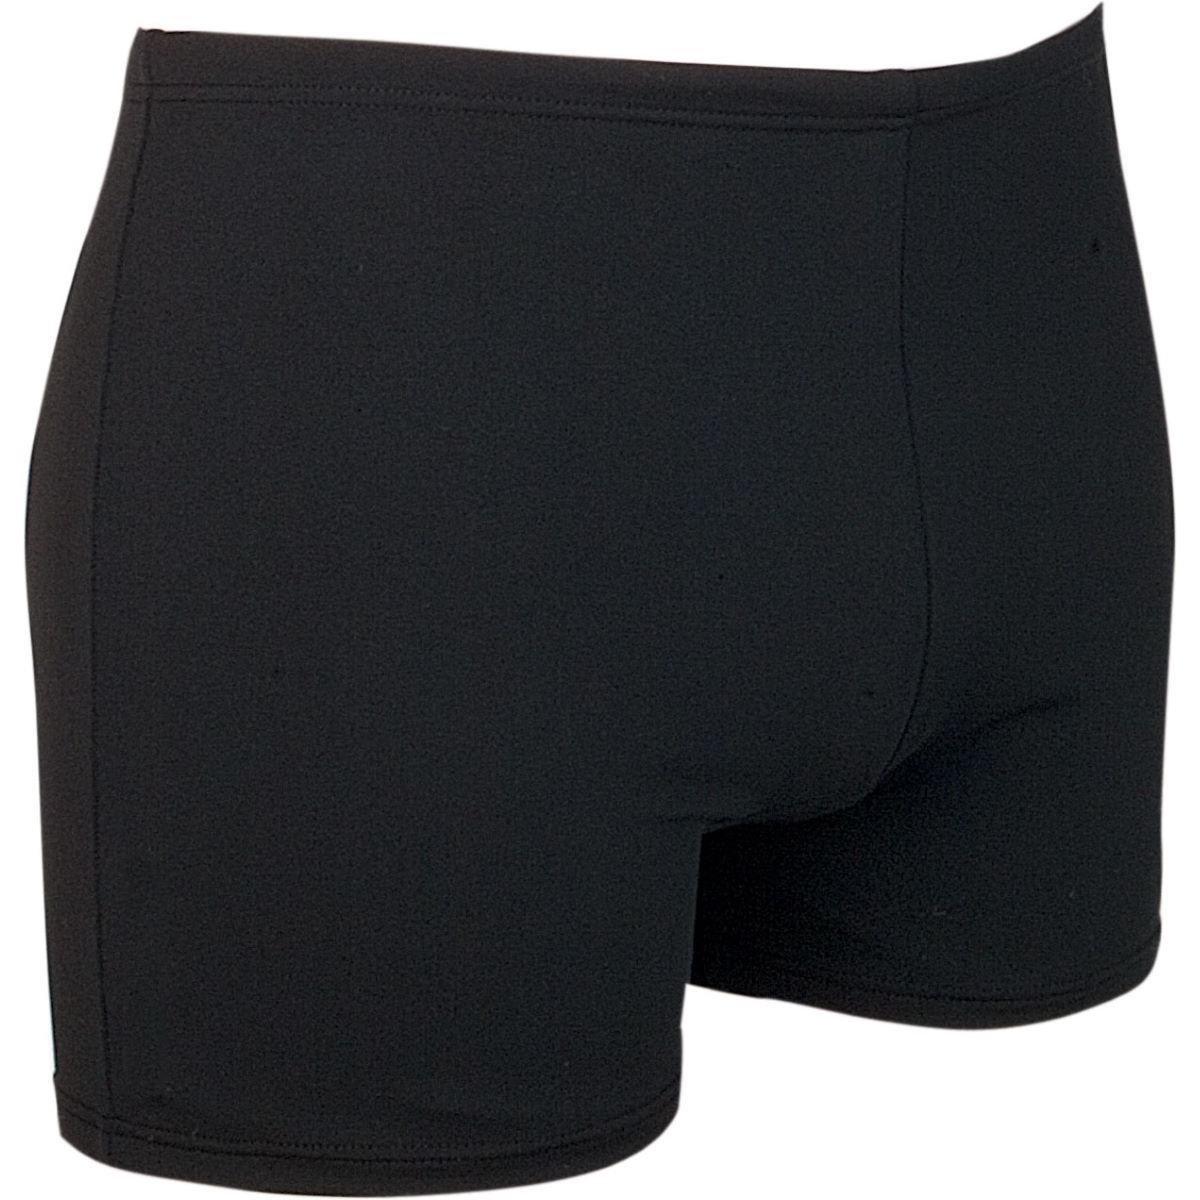 Zoggs Boys Cottesloe Hip  Racer - 6-7 Years Black  Swimming Shorts